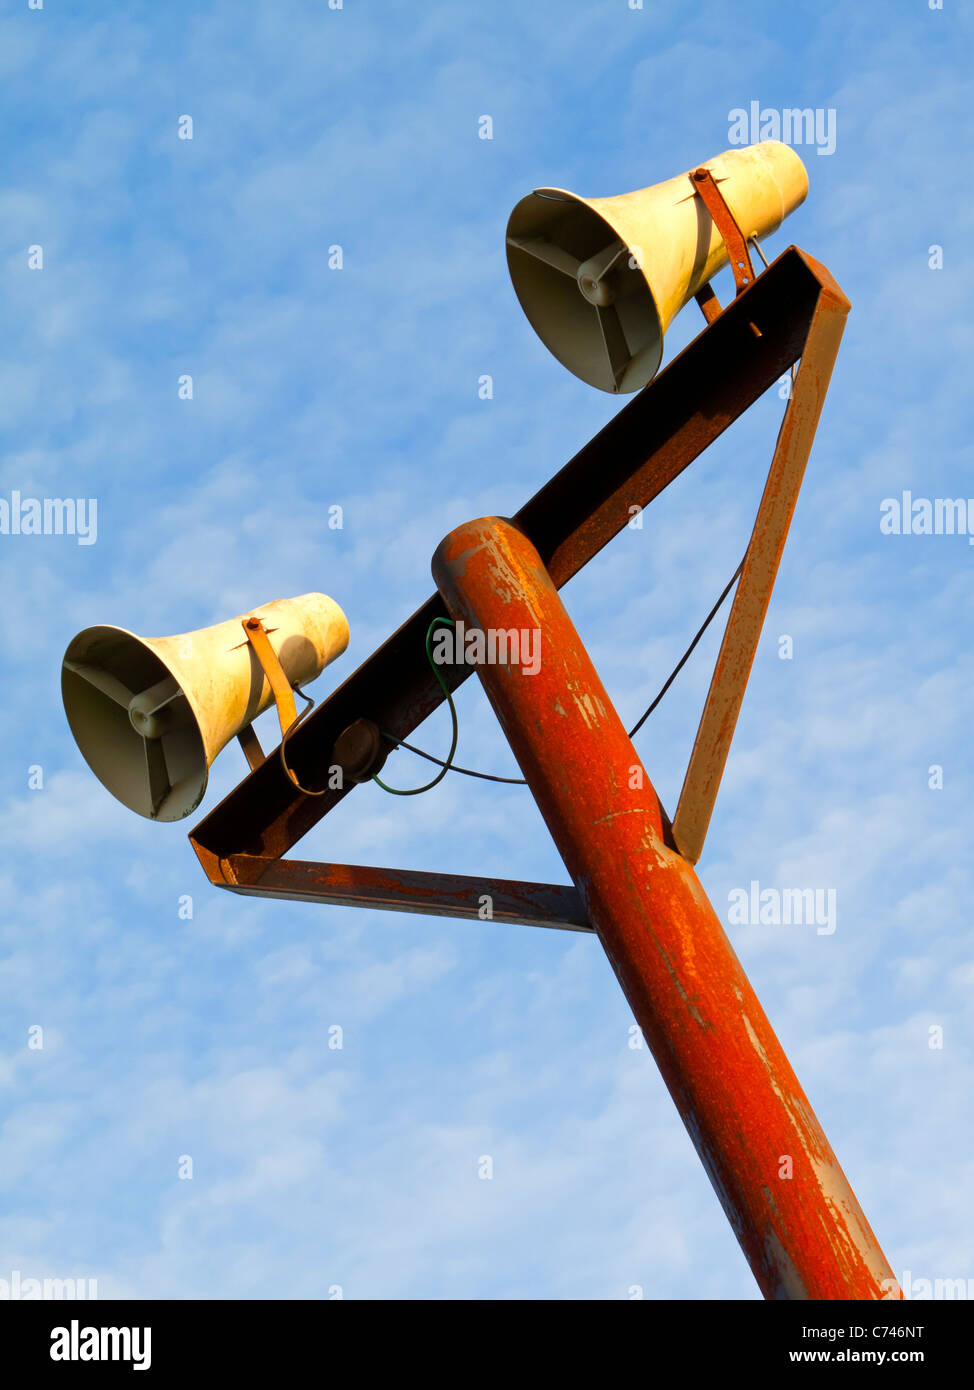 Pair of public address system loudspeakers on a pole with blue sky behind - Stock Image